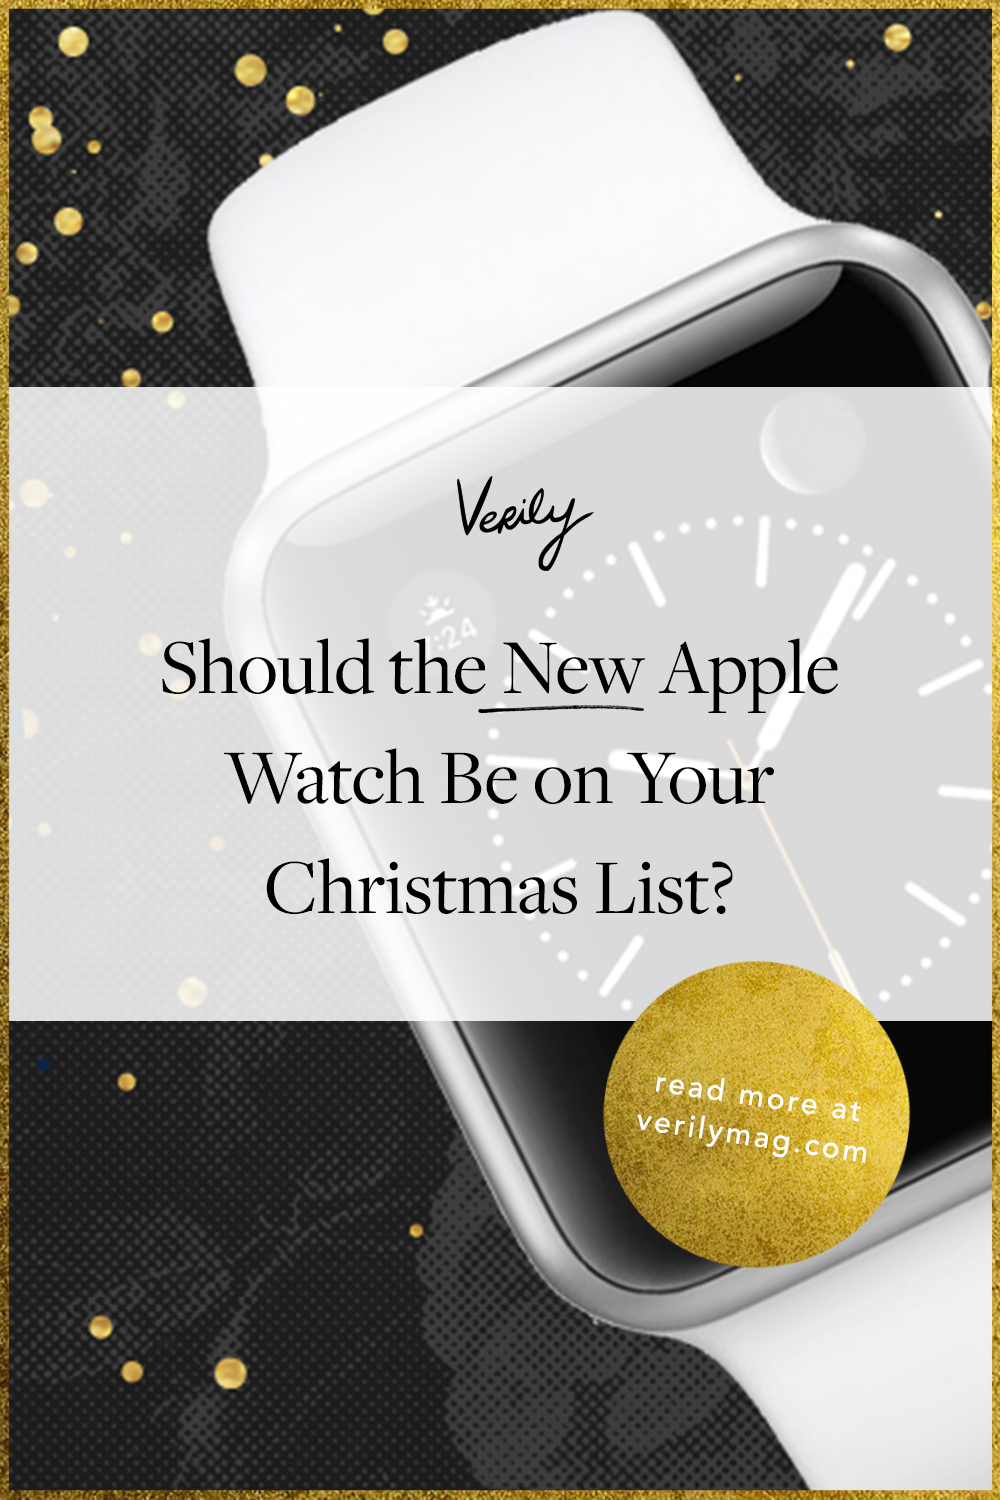 Cutting through the hype - should you get the Apple Watch Series 3 this Christmas?